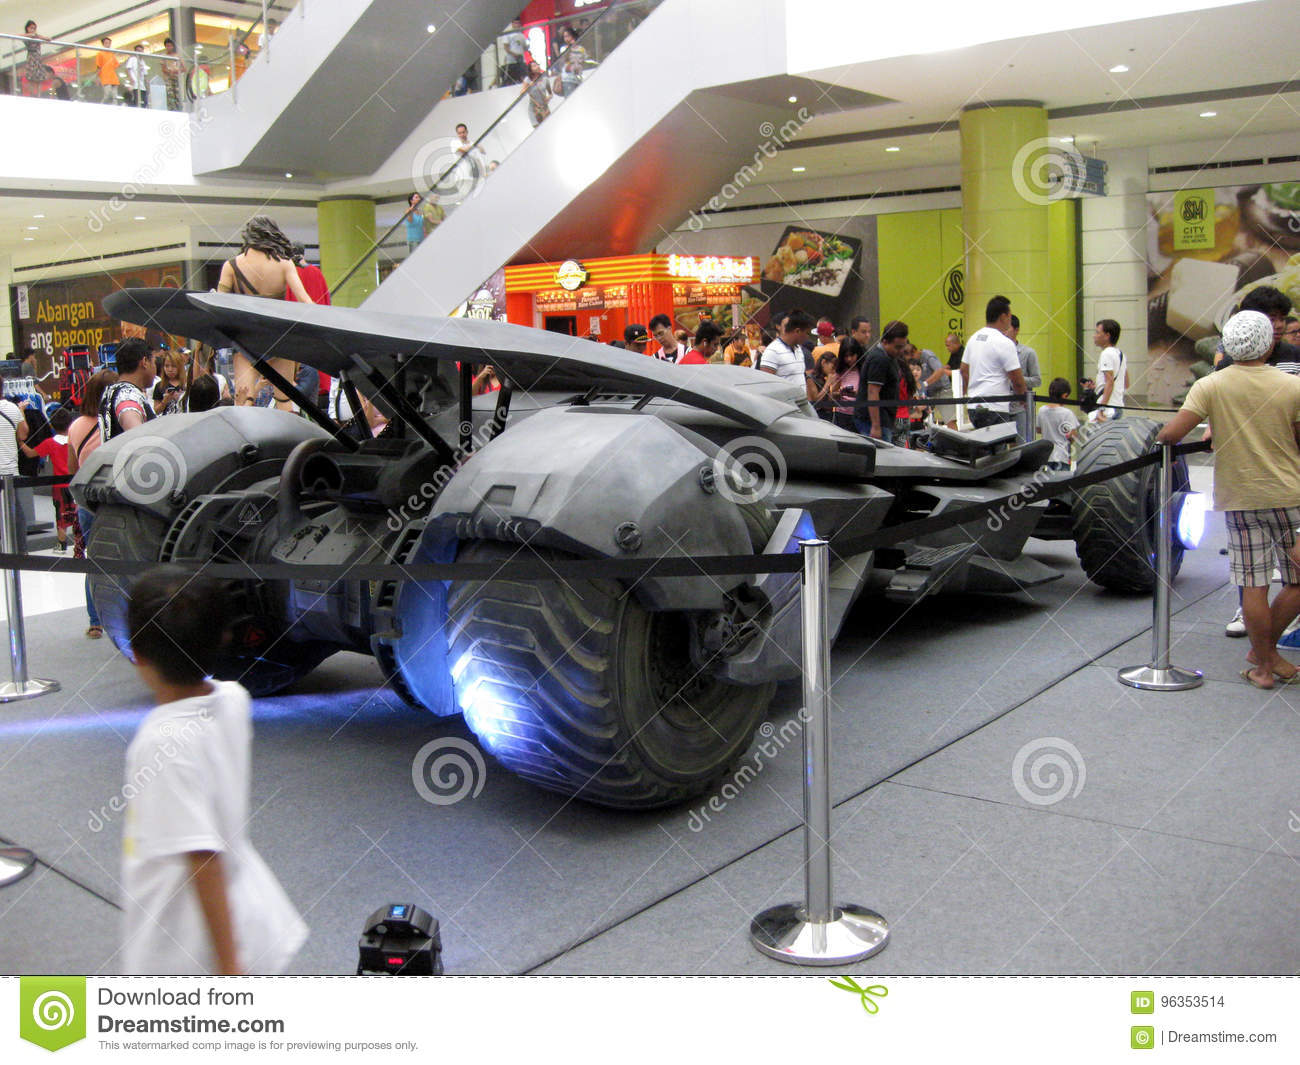 Groovy Batmobile Sm City San Jose Del Monte Mall Bulacan Download Free Architecture Designs Scobabritishbridgeorg